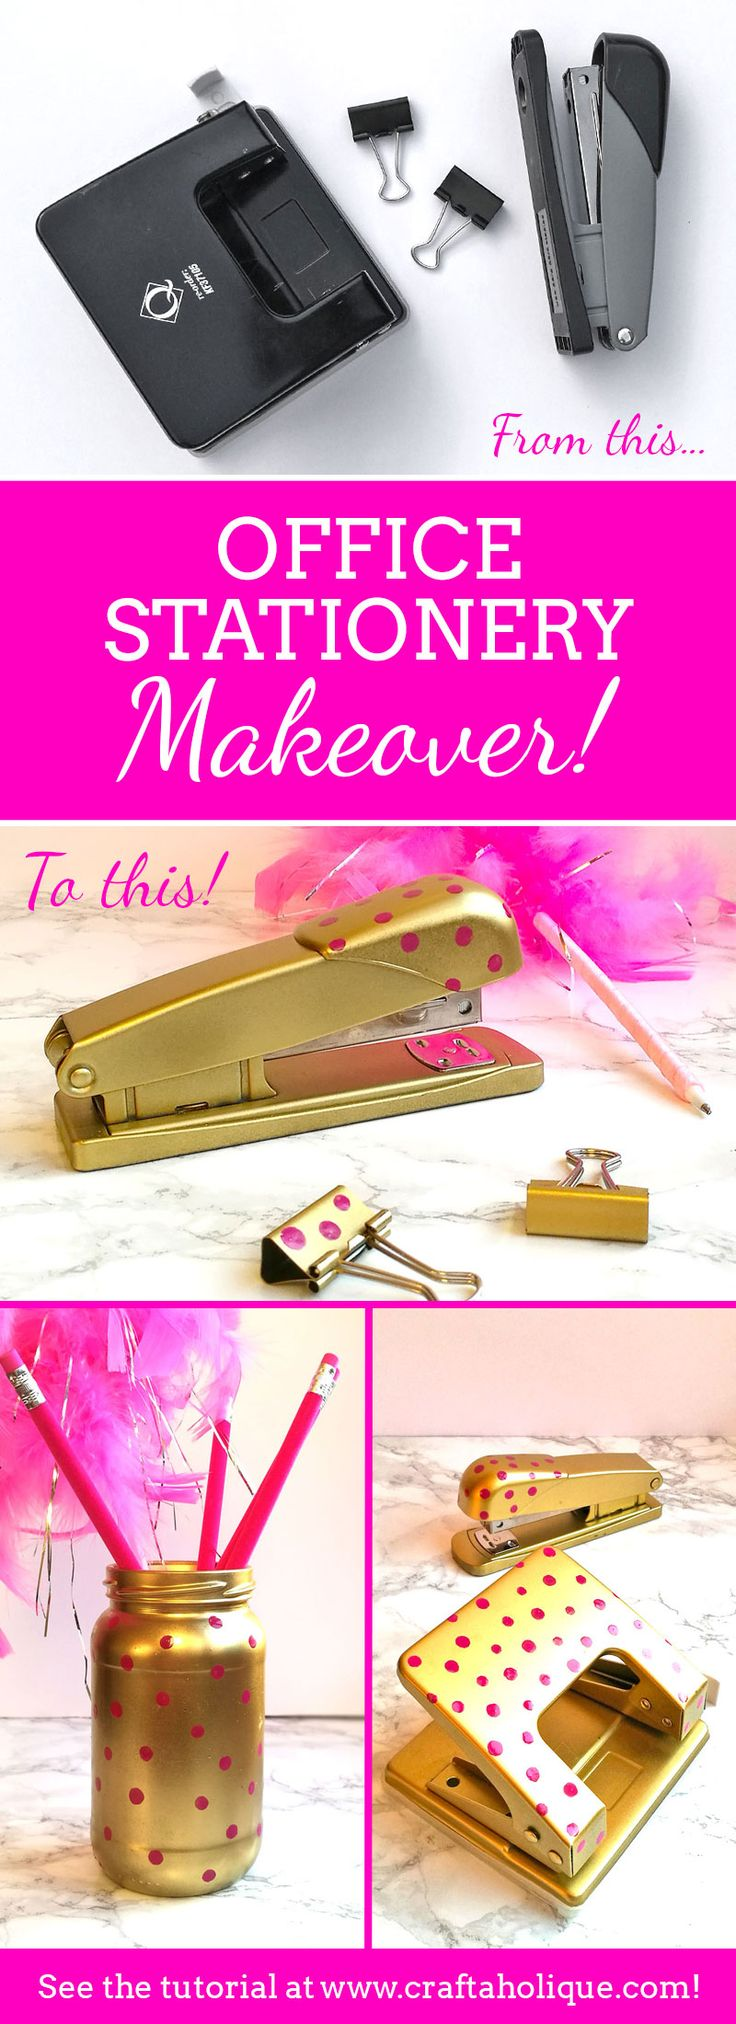 Make your stapler happy! Makeover your office stationery using spray paint and nail polish. See this craft project over at Craftaholique!